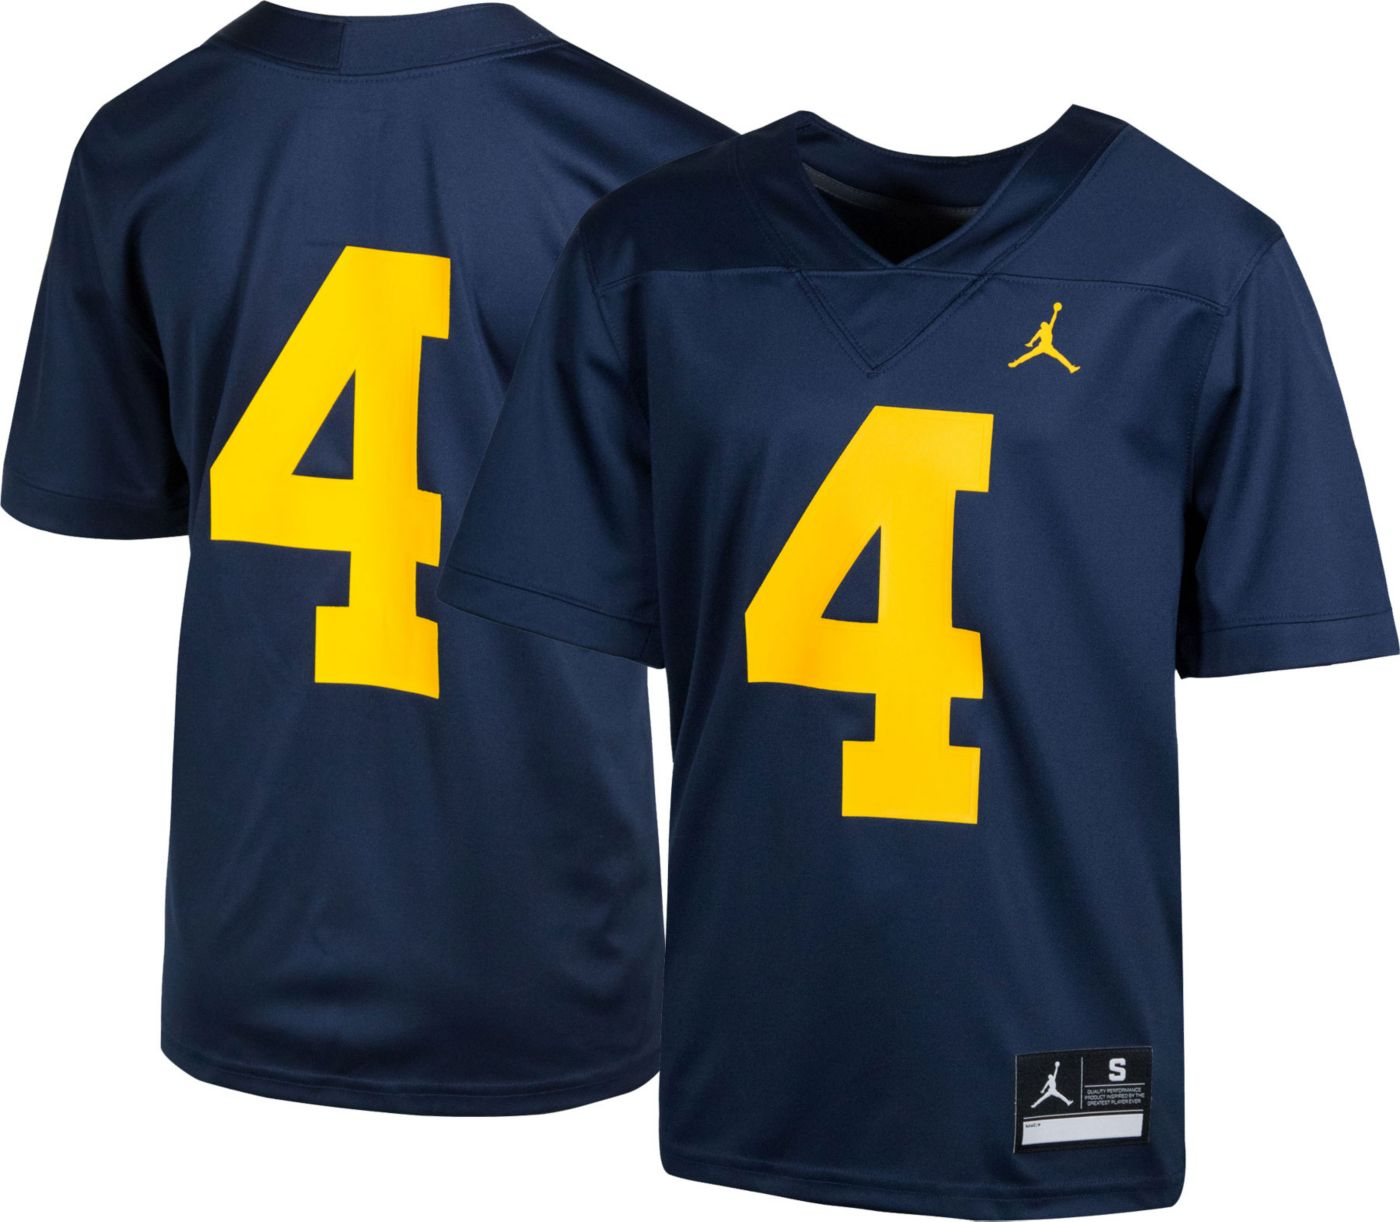 Nike Youth Michigan Wolverines #4 Blue Game Football Jersey